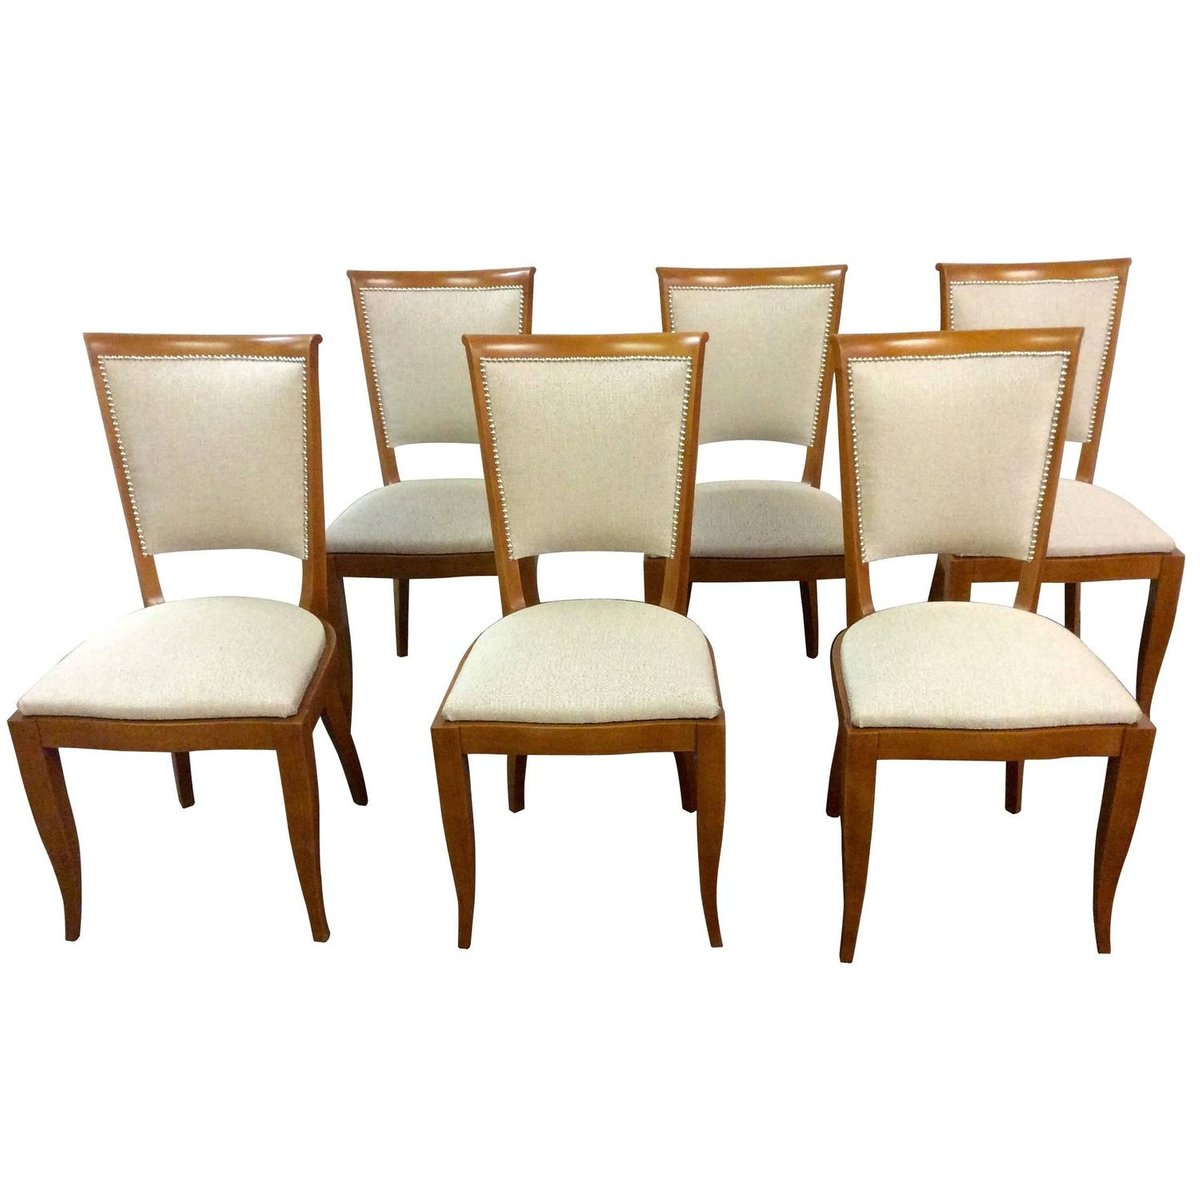 Art deco french dining chairs 1930s set of 6 for sale at for Deco 6 brumath